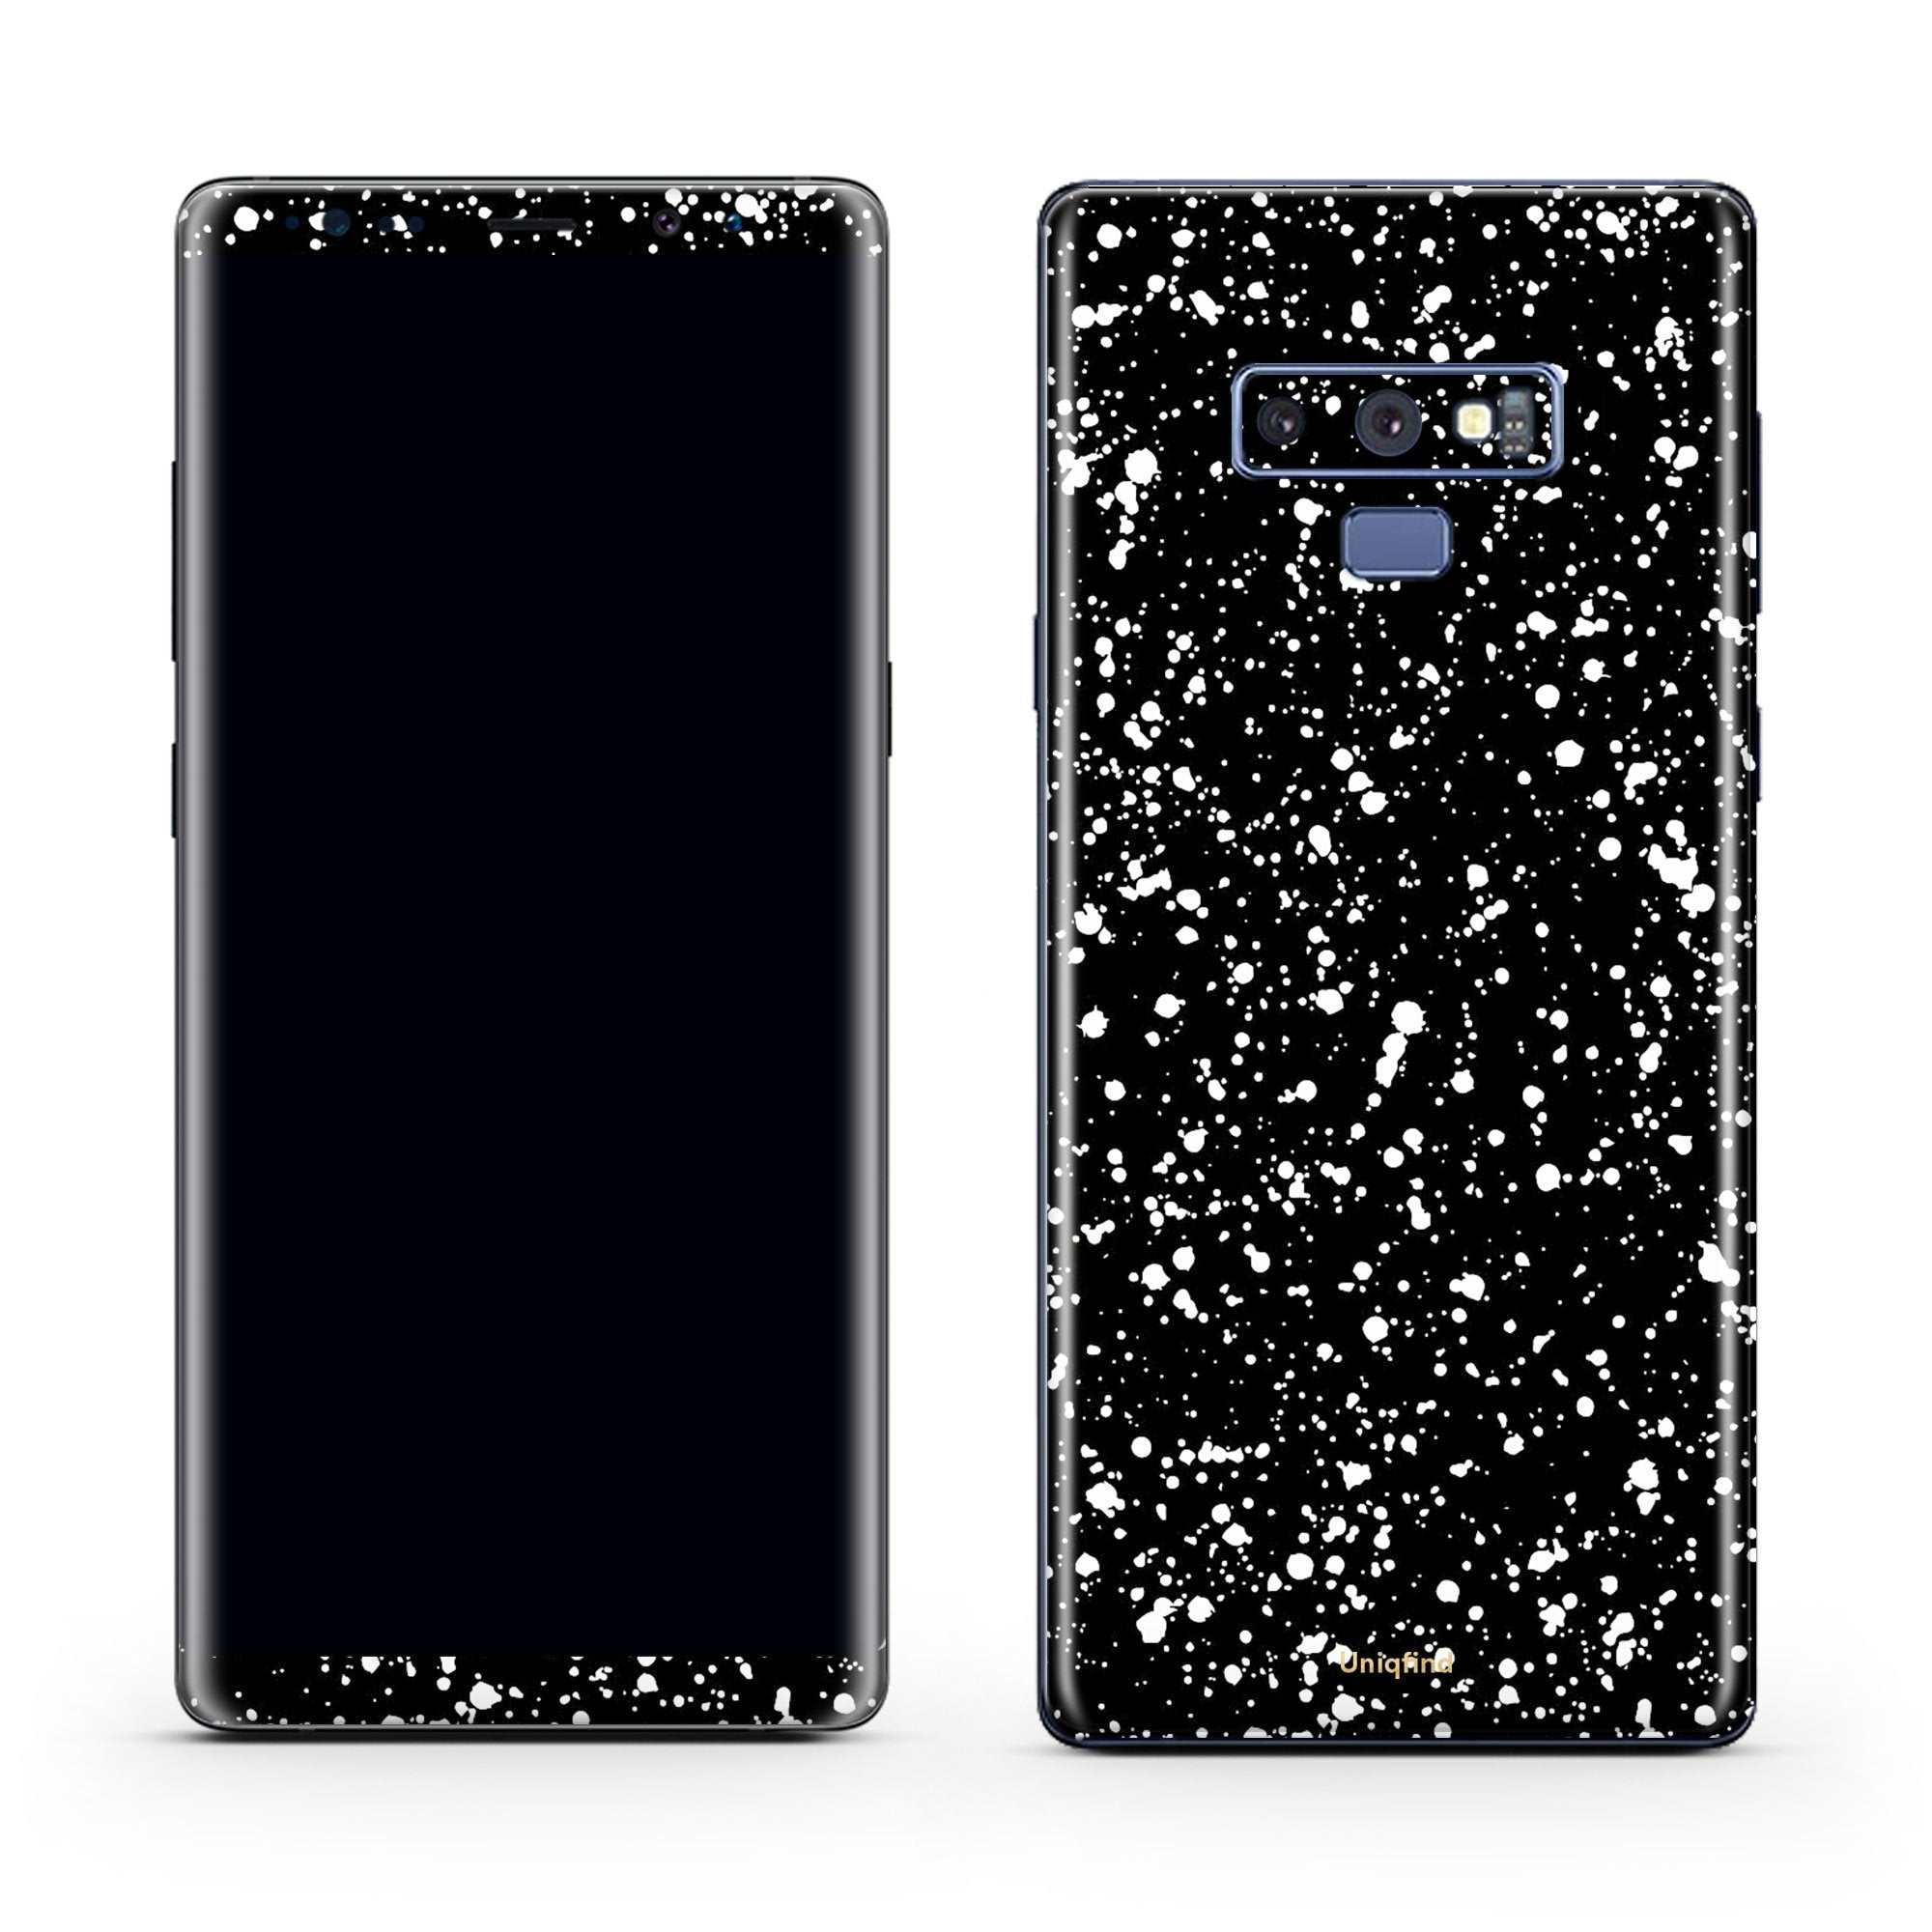 Black Speckle Galaxy Note 9 Skin + Case